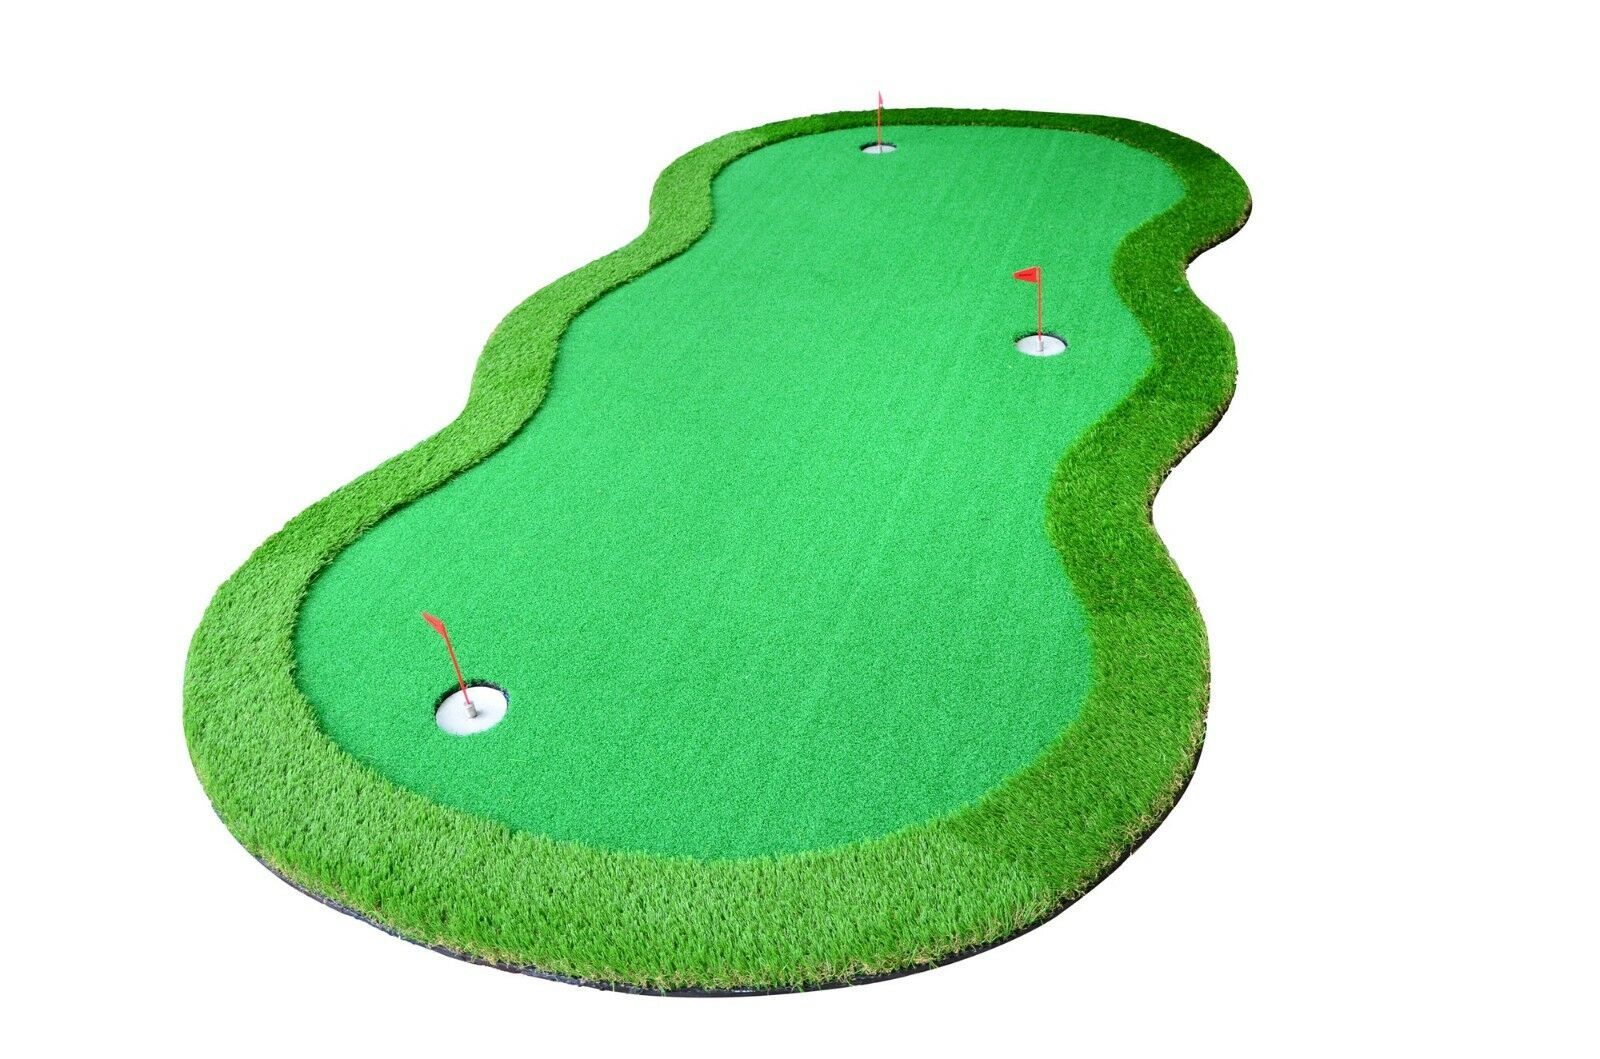 Personal Simulation Golf Putting Green Indoor Outdoor